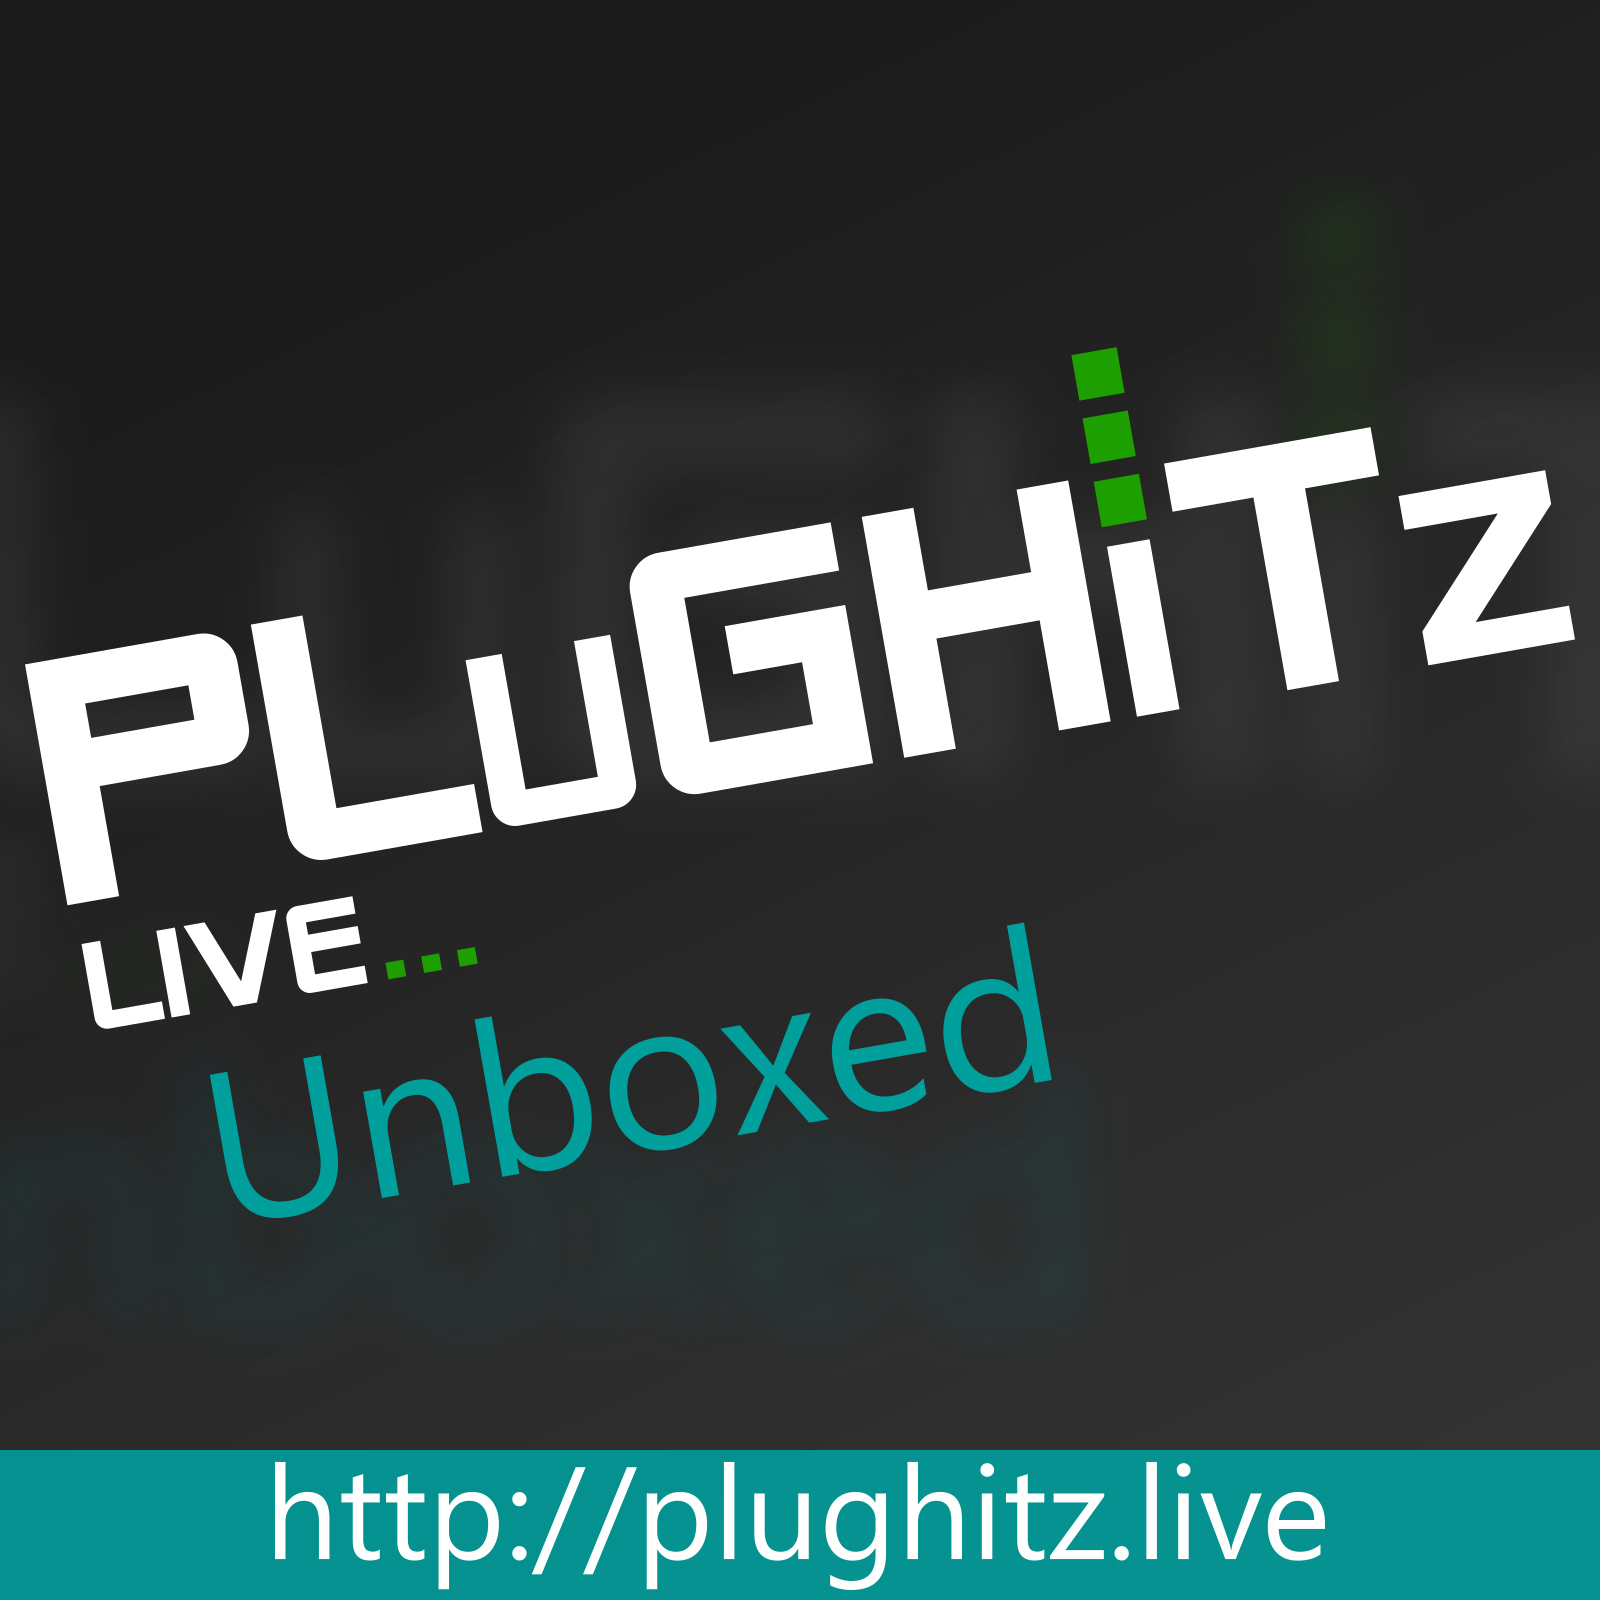 PLuGHiTz Live Unboxed Cover Image